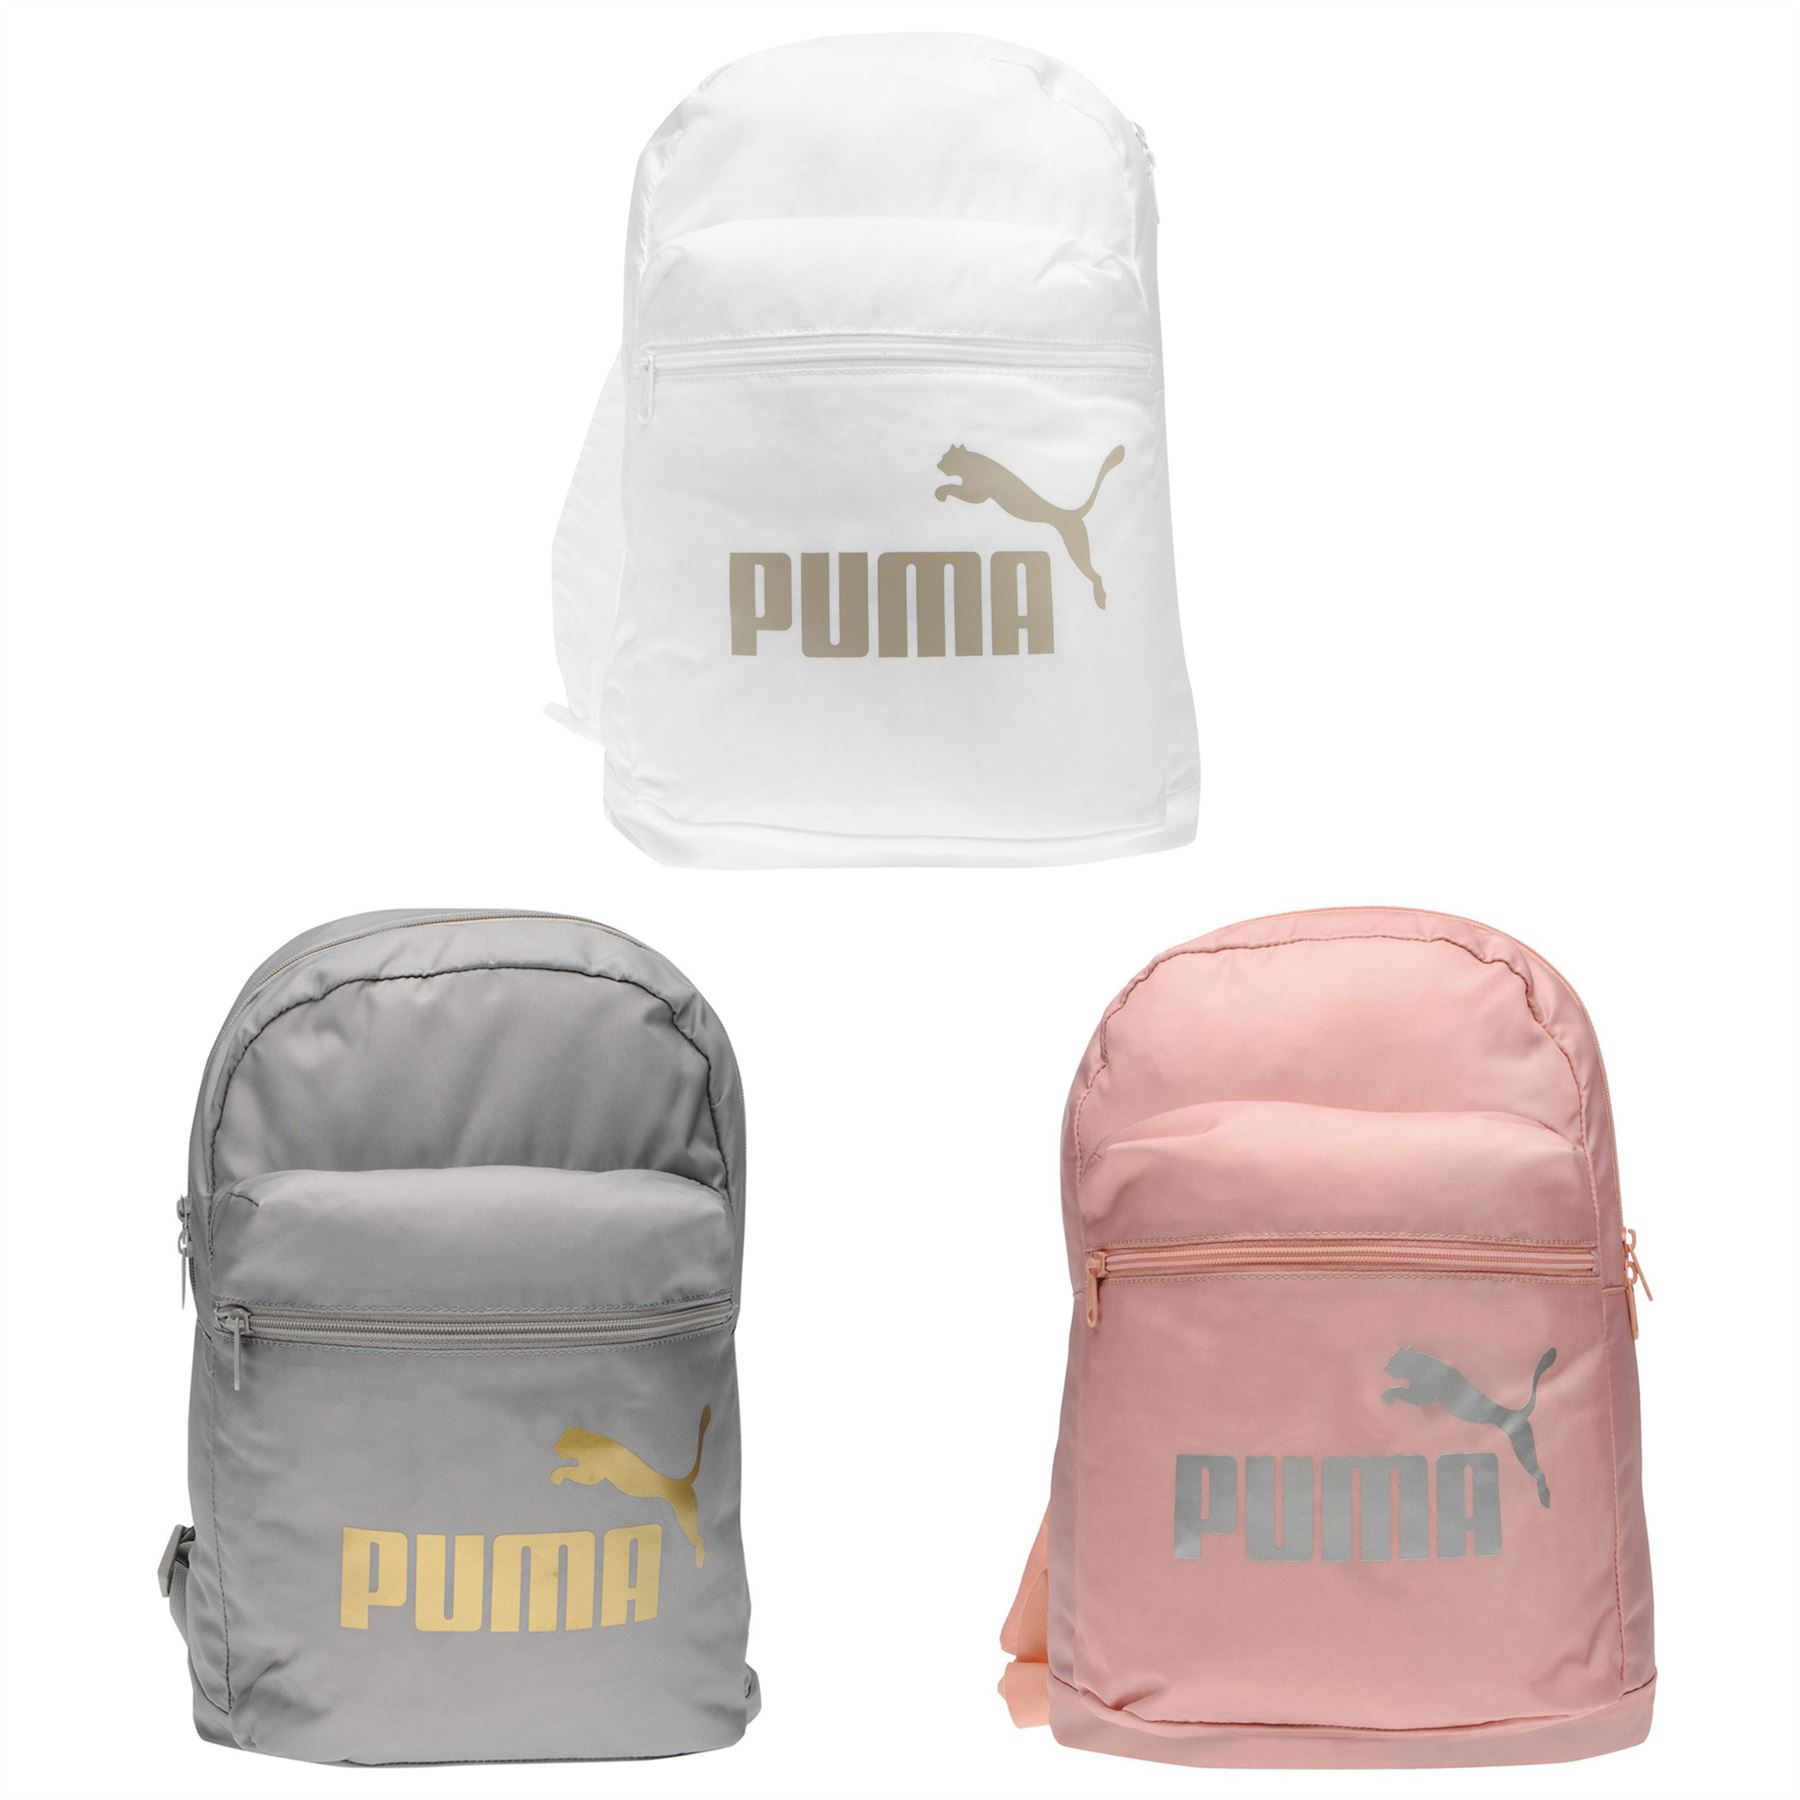 b55b6de23f Details about Puma Archive Backpack Womens Rucksack Daypack Bag